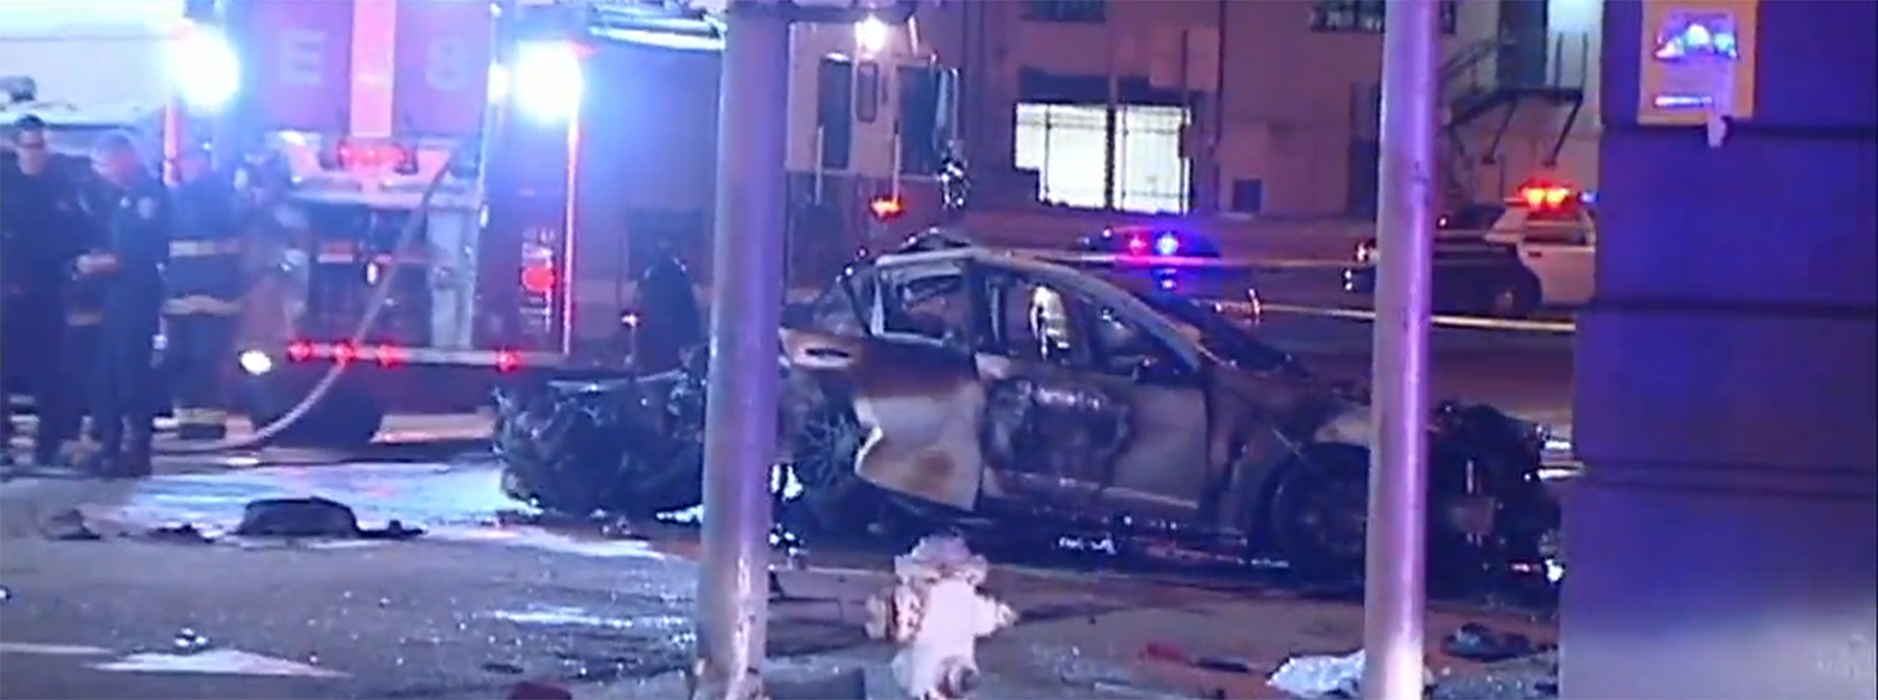 Three people died after a car chase pursuit ensued on Saturday, February 6 in San Francisco. California Highway Patrol officers reported a white Chevrolet driving recklessly around 9:20 p.m. at Fifth and Bryant Street.